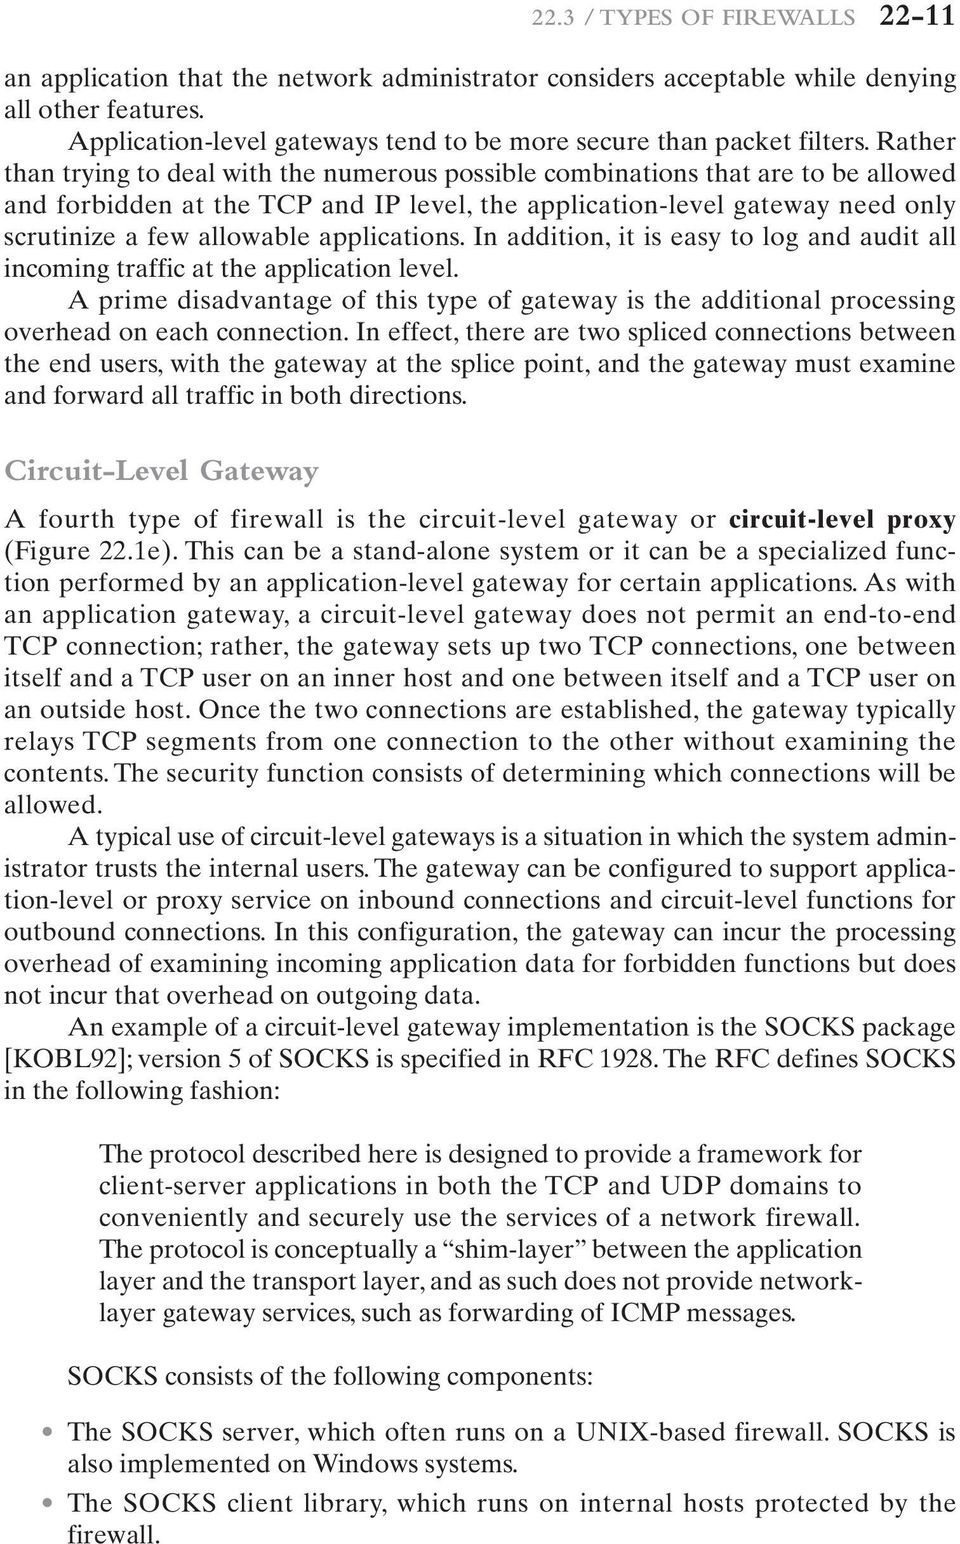 Rather than trying to deal with the numerous possible combinations that are to be allowed and forbidden at the TCP and IP level, the application-level gateway need only scrutinize a few allowable